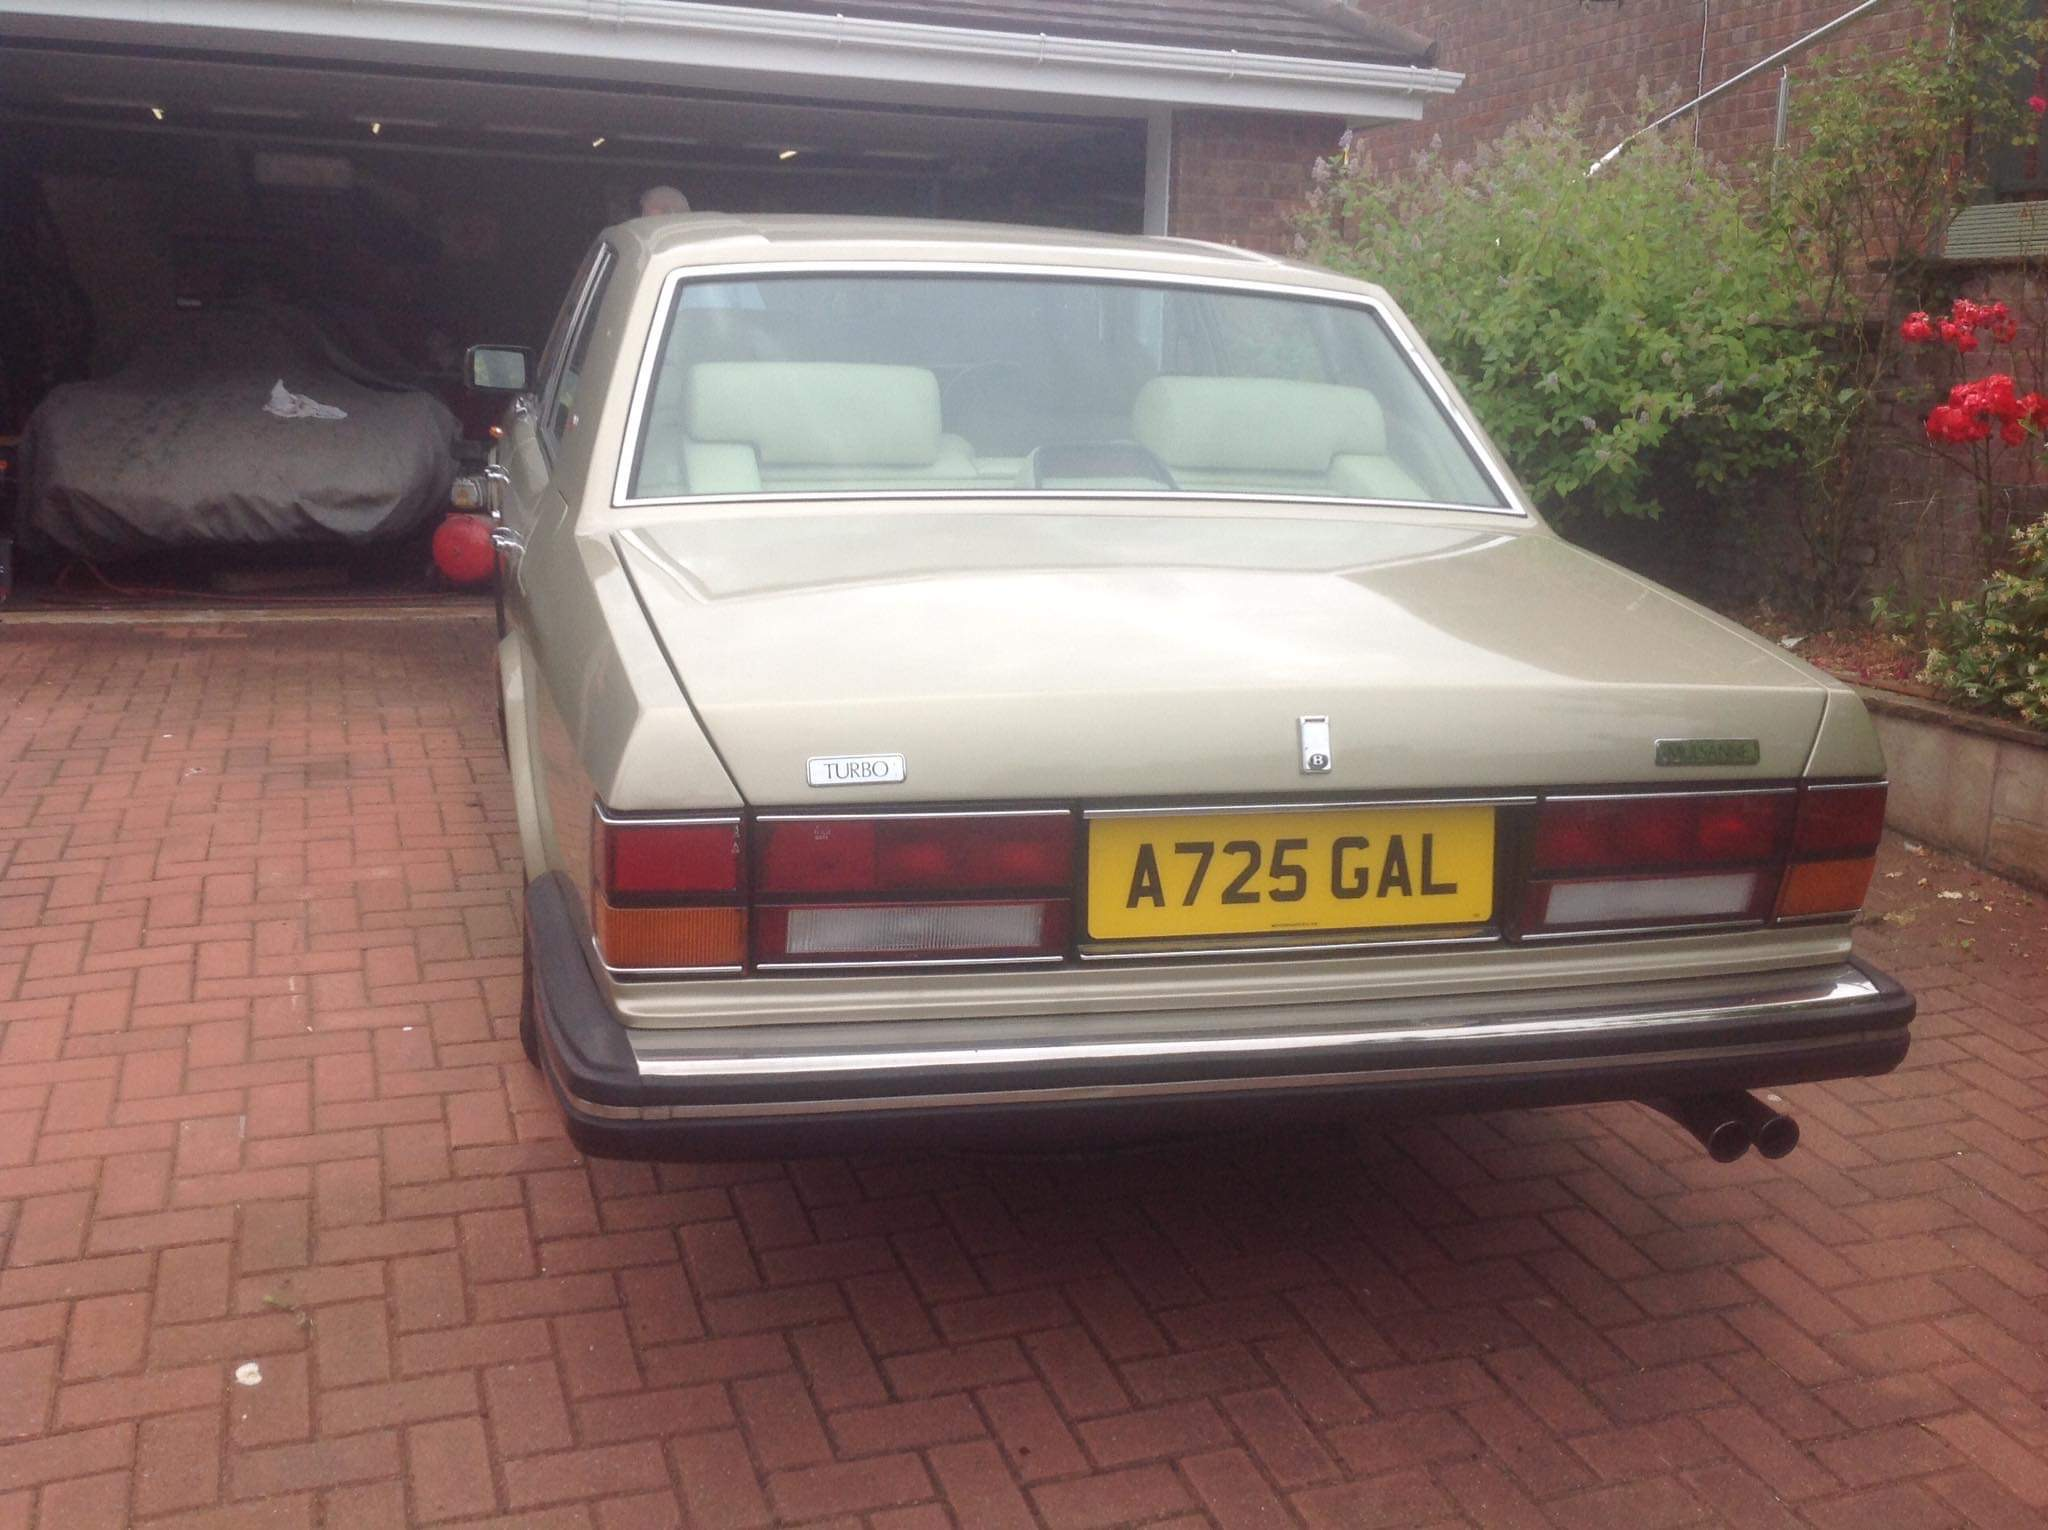 1983 Bentley Mulsanne with Turbo Engine For Sale (picture 3 of 10)